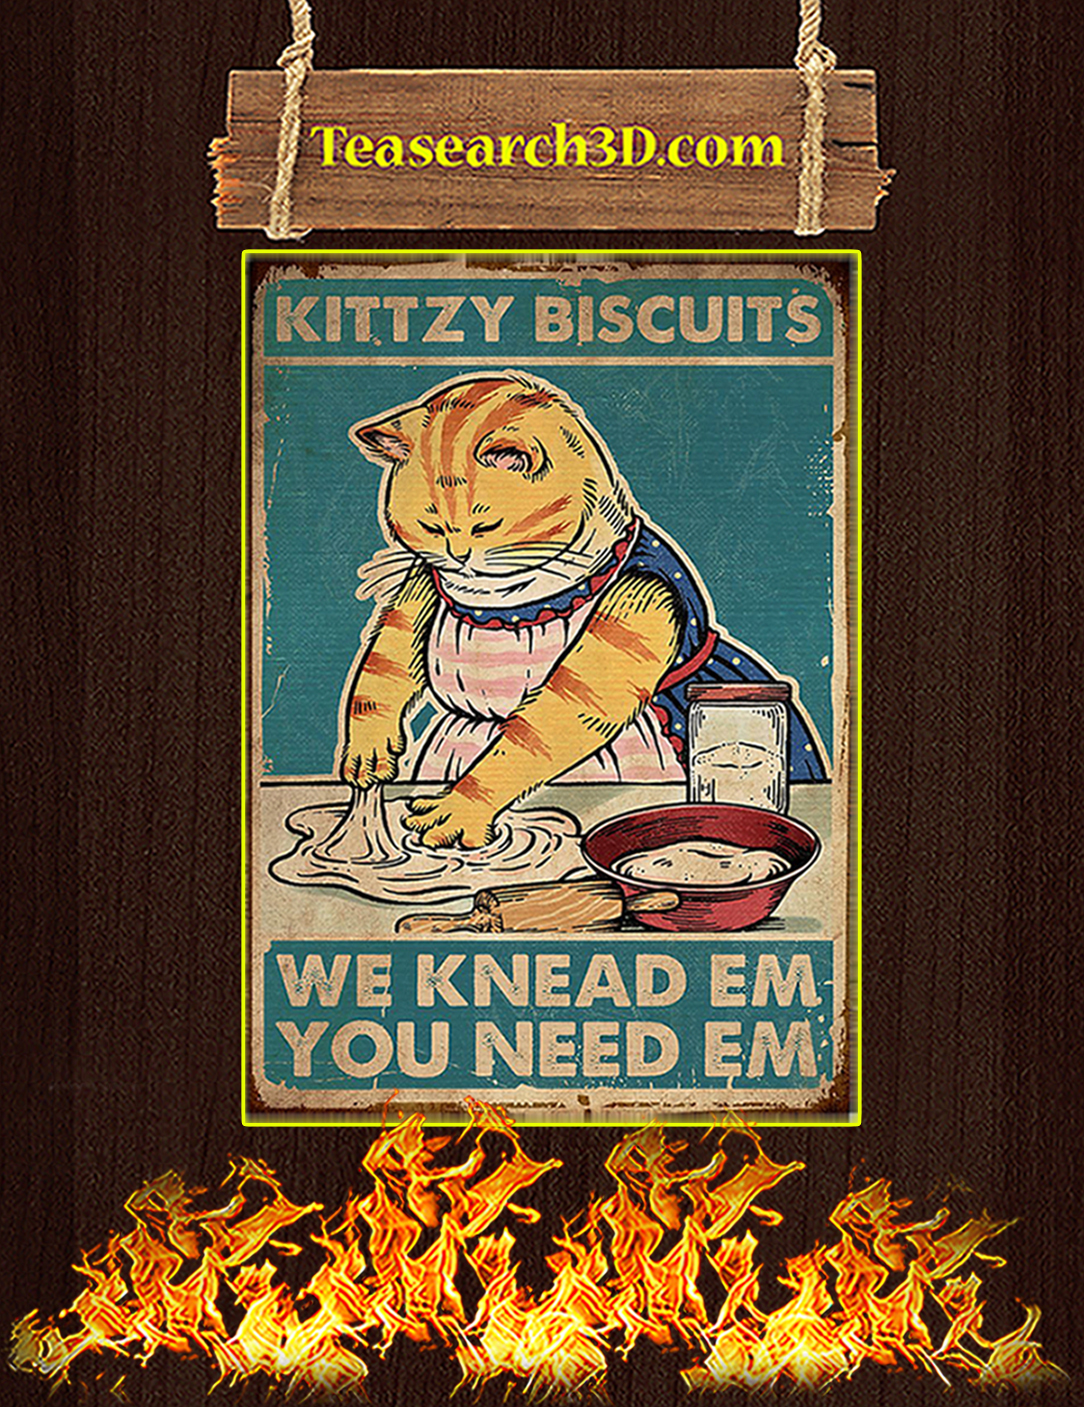 Cat Kittzy Biscuits We Knead Em You Need Em Poster A2